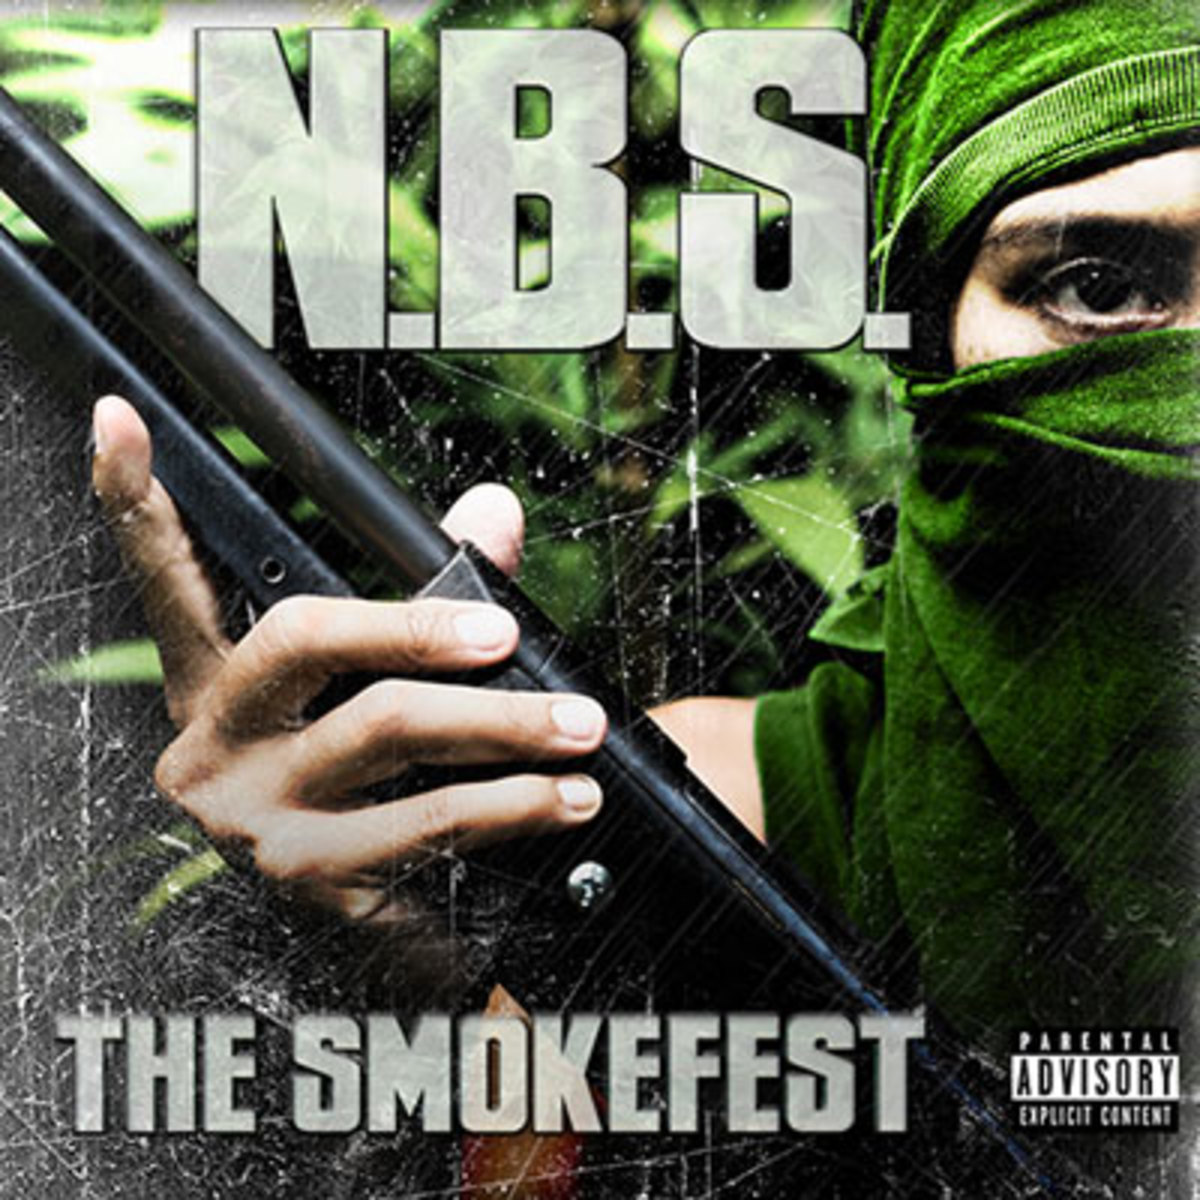 nbs-thesmokefest.jpg